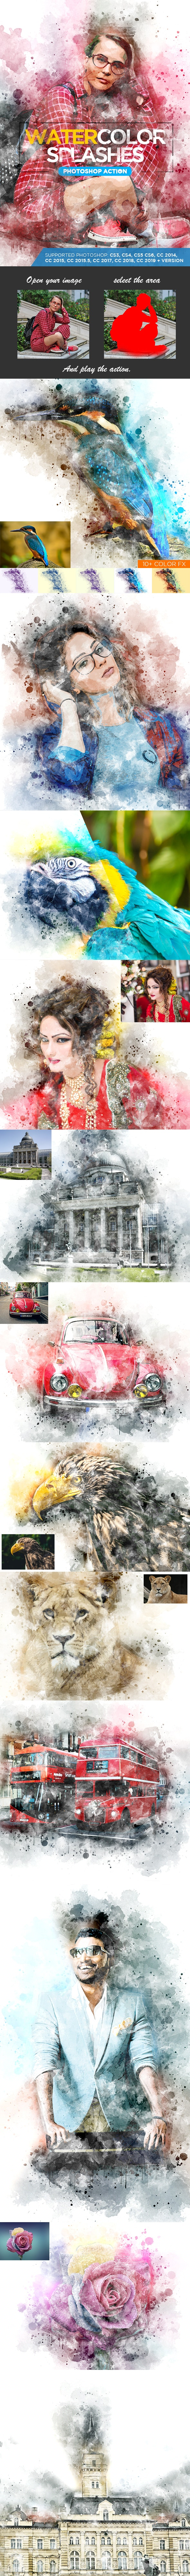 Watercolor Splashes - Photoshop Action - Photo Effects Actions